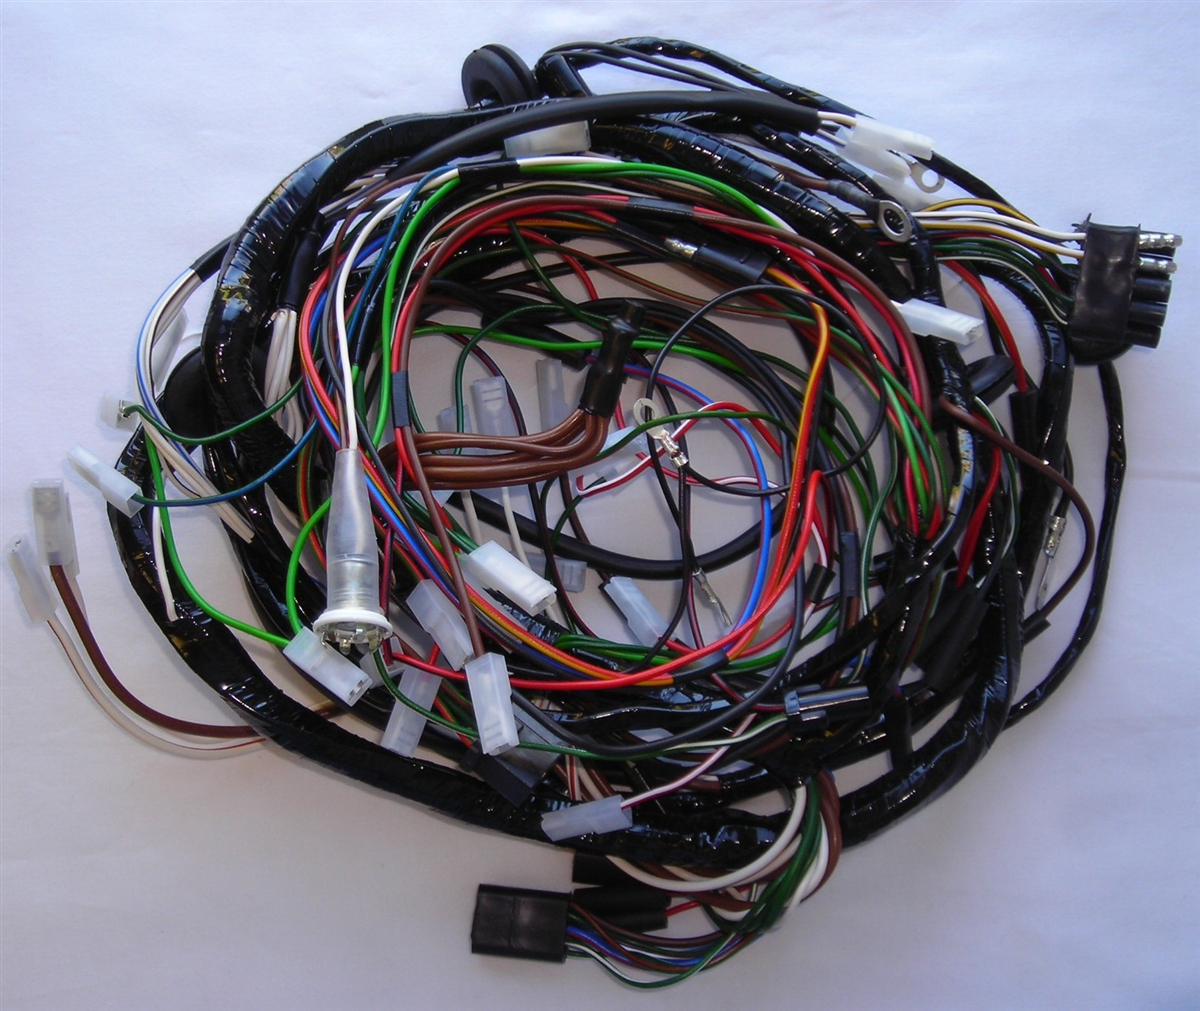 small resolution of land rover series 3 main wiring harness land rover defender wiring harness rover wiring harness